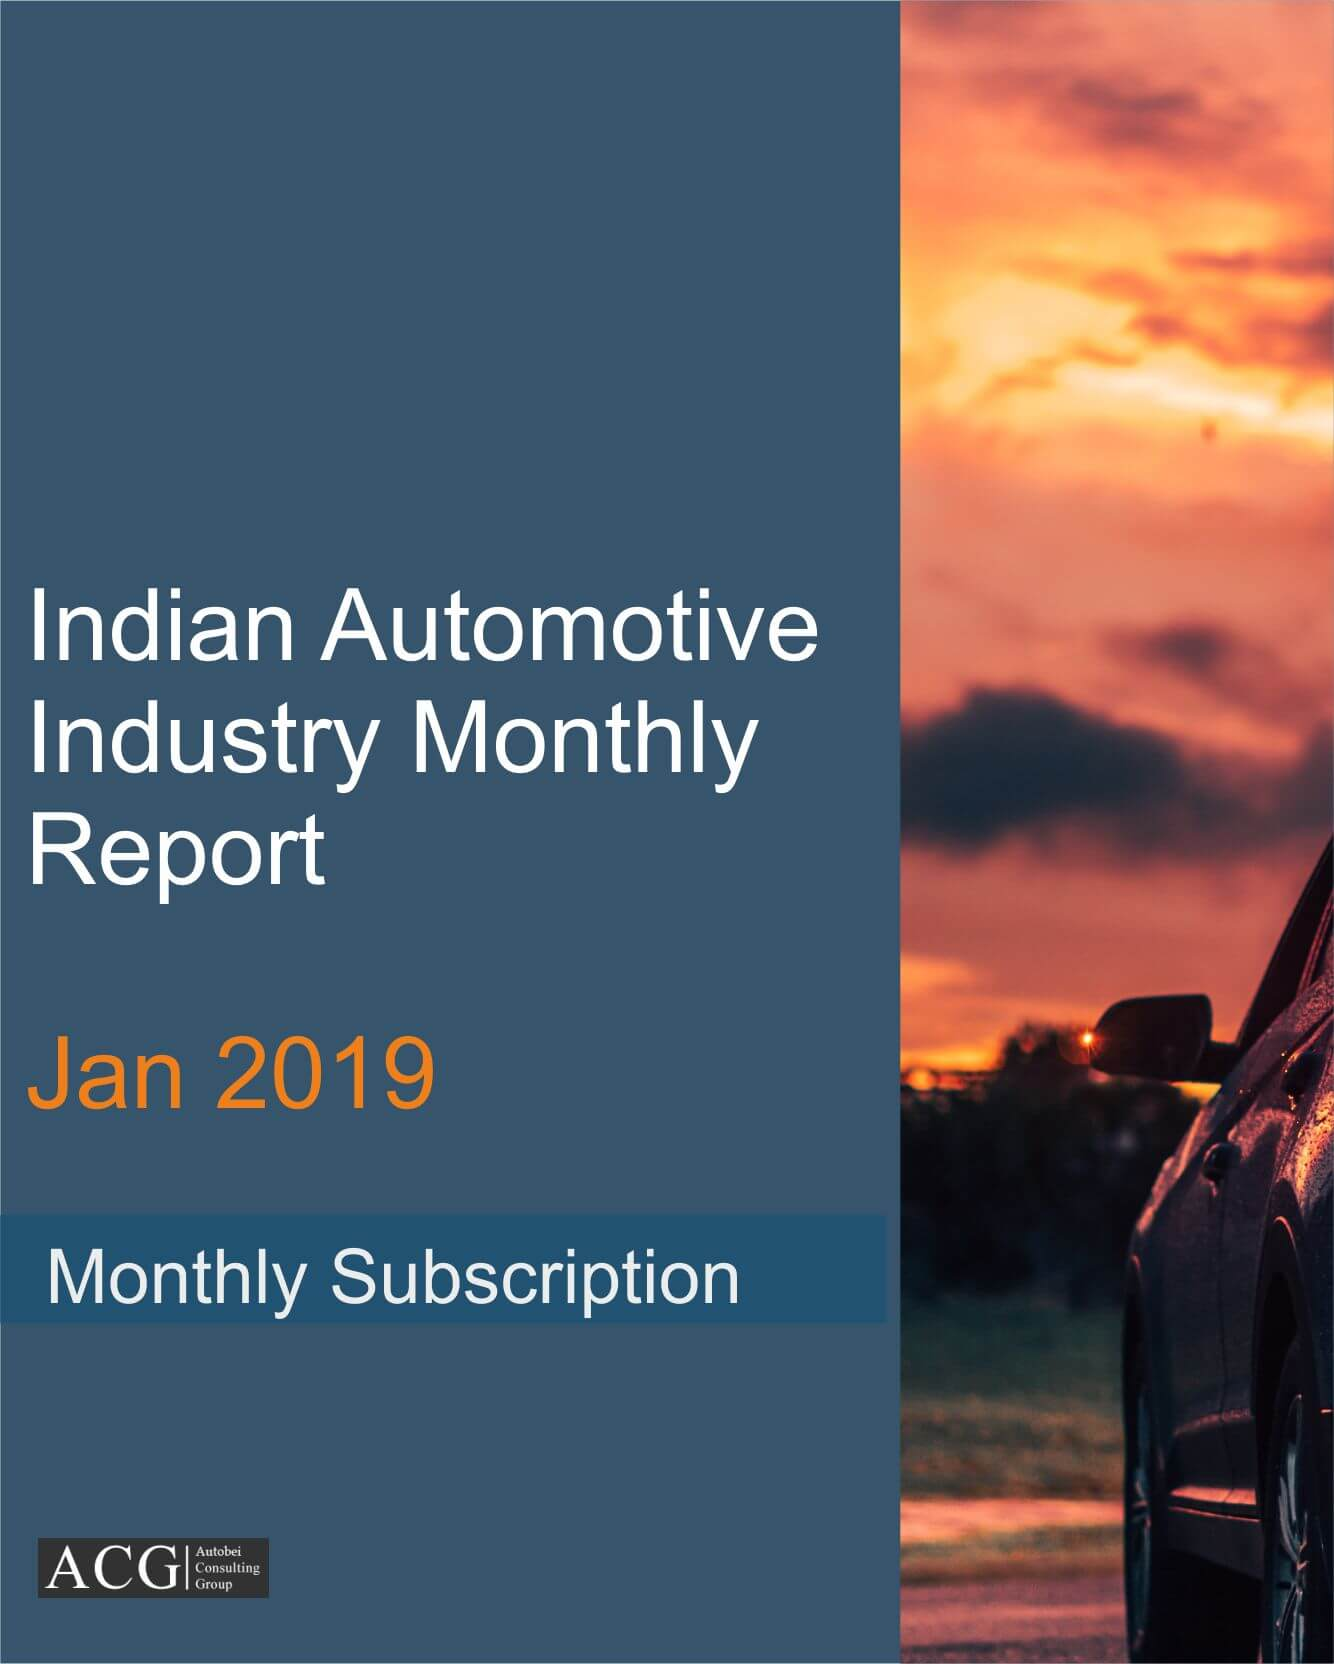 Recapitulation of Indian Automotive Industry Jan 2019